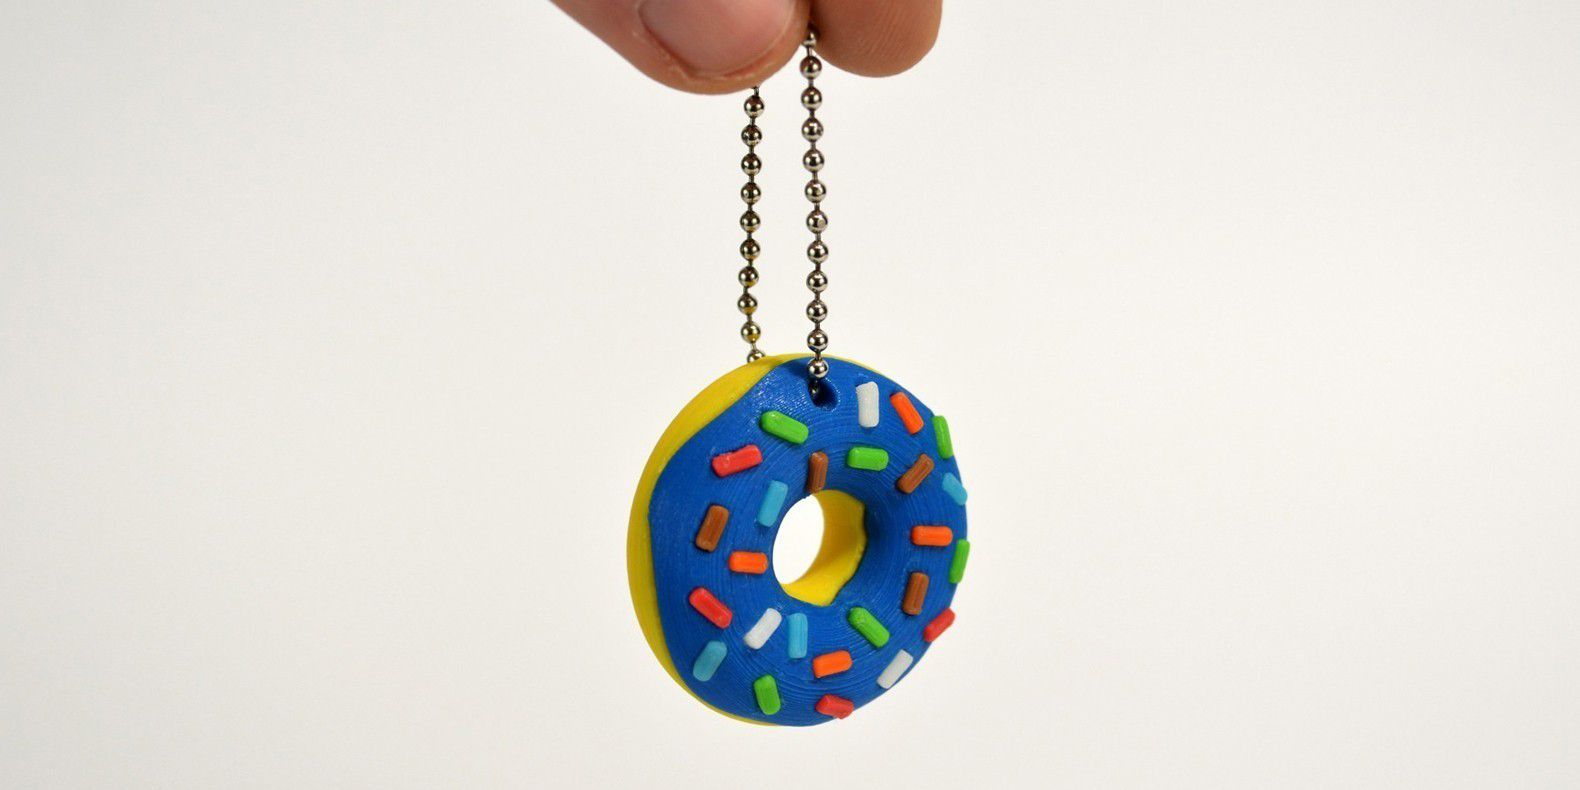 Discover in this new collection of 3D templates, all the 3D printer files of keychains